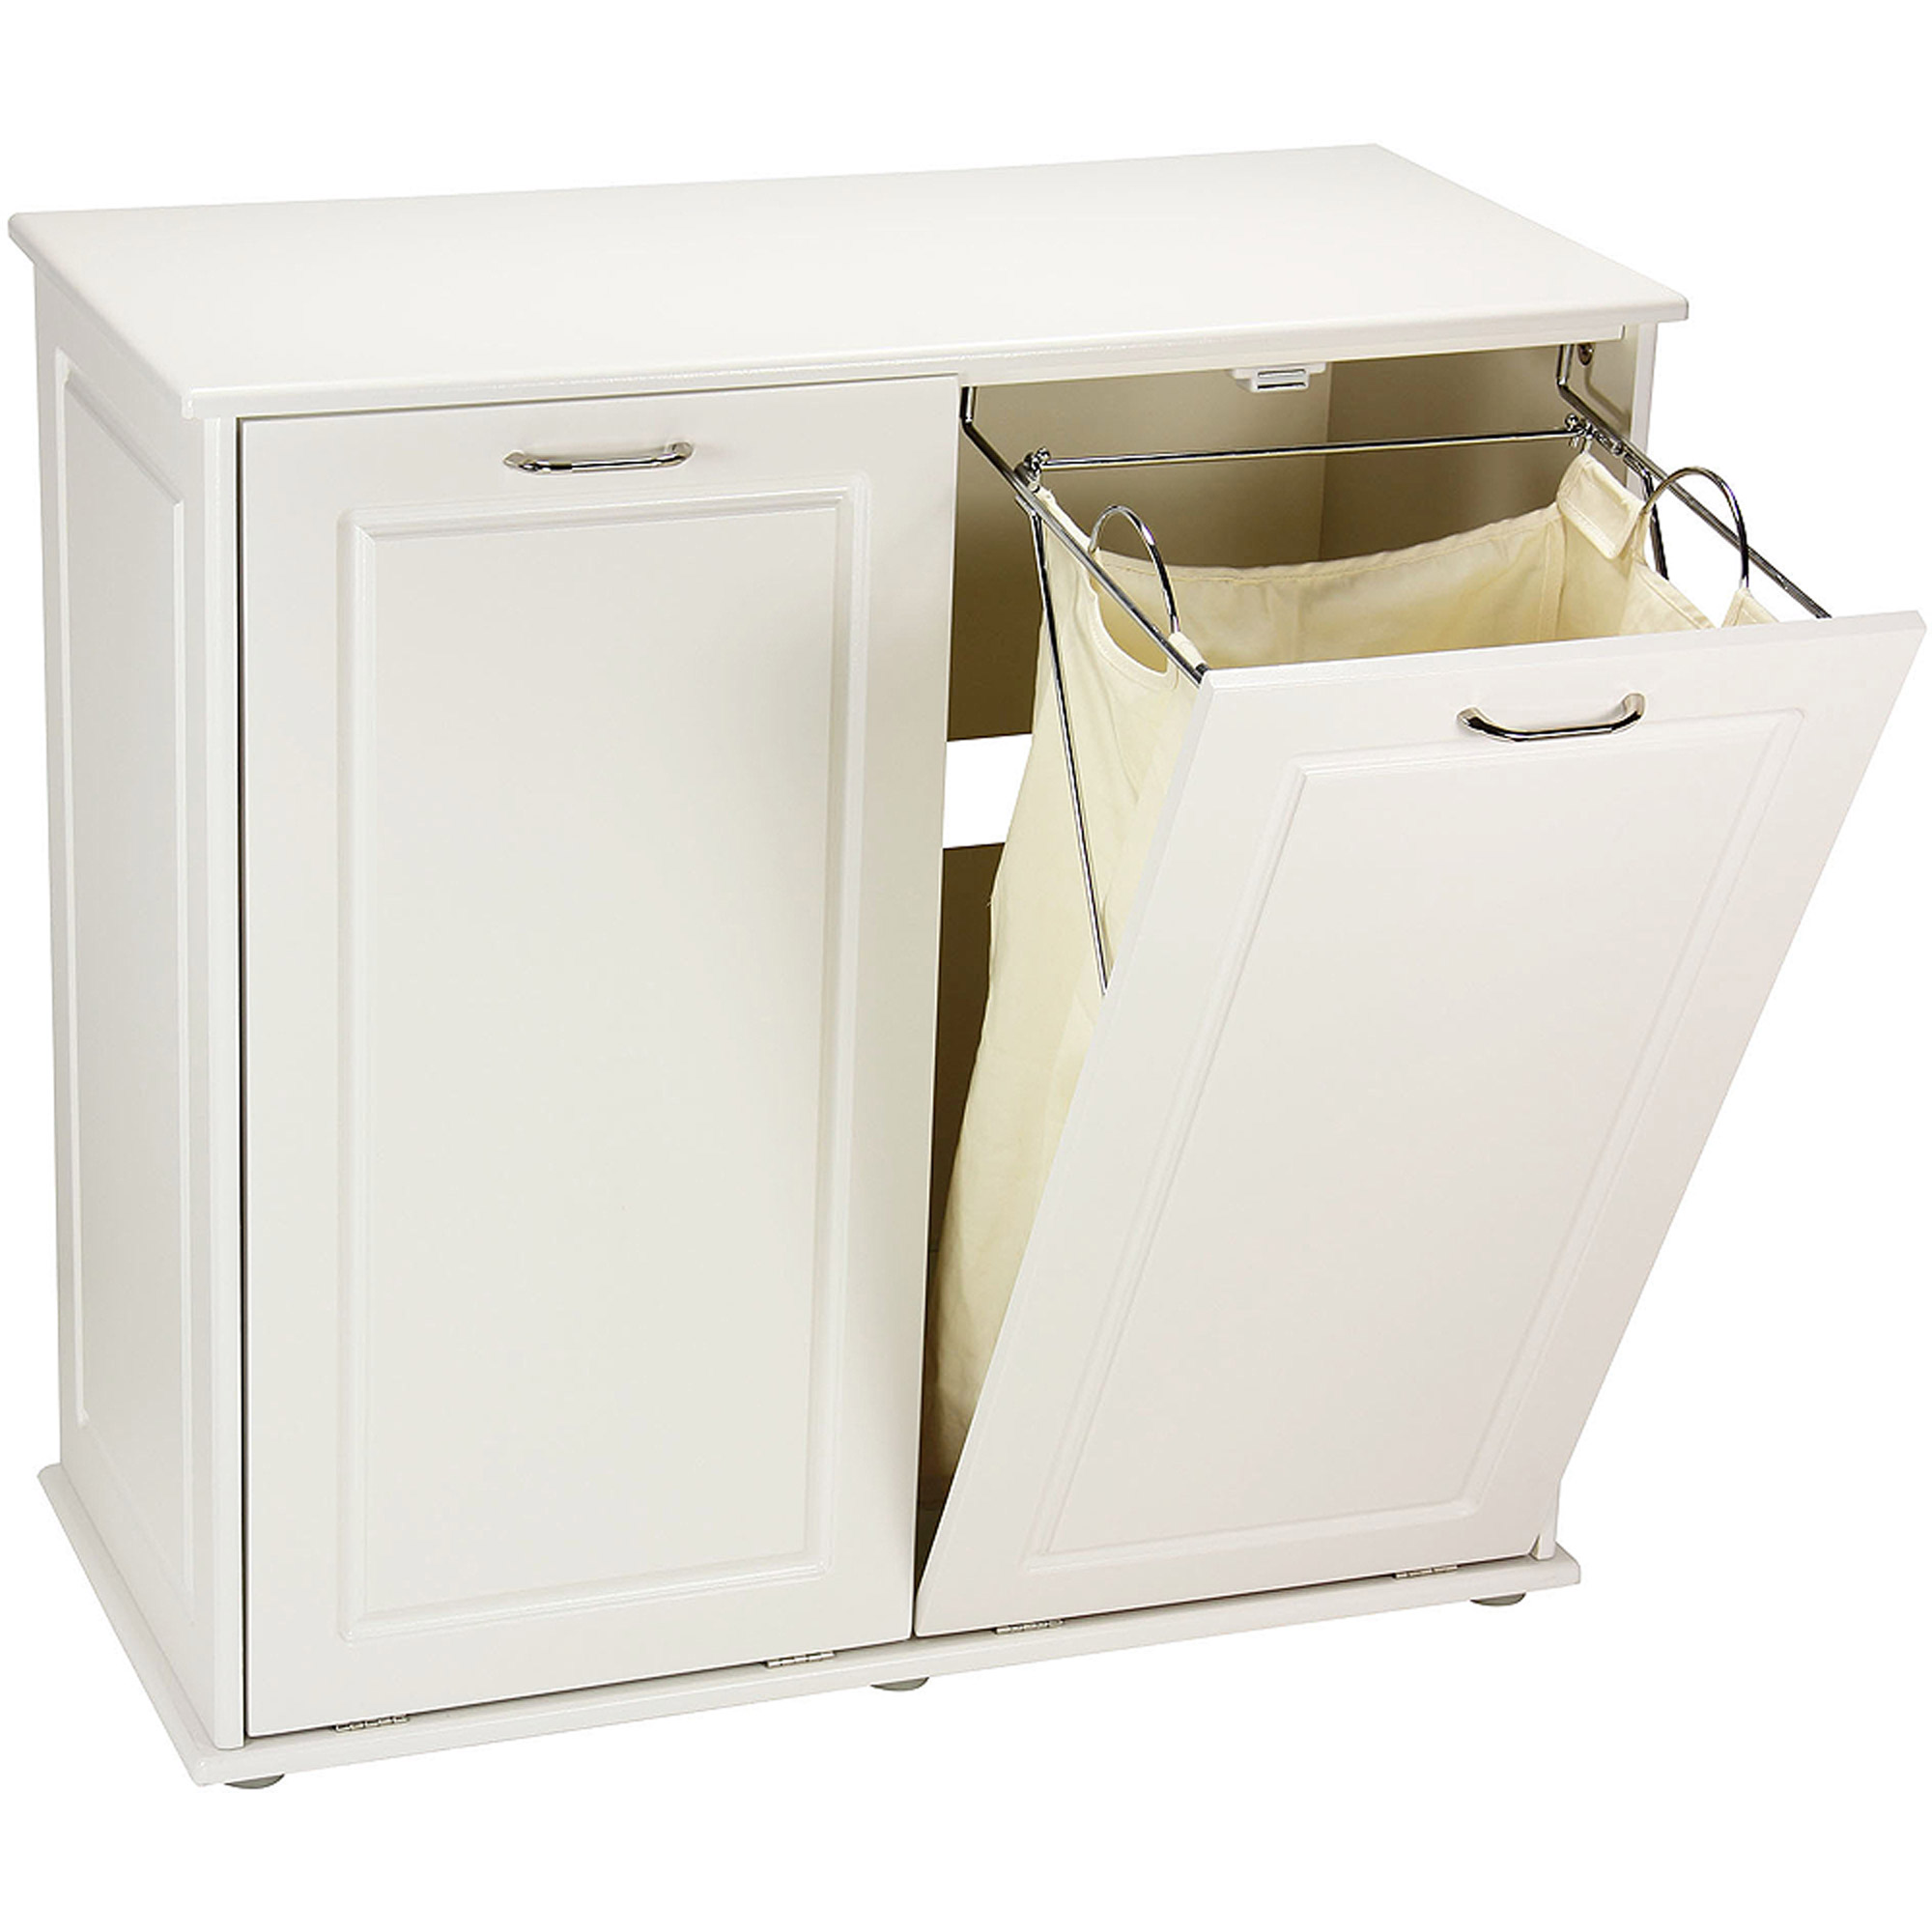 Hamper Cabinet Tilt Out Seeshiningstars